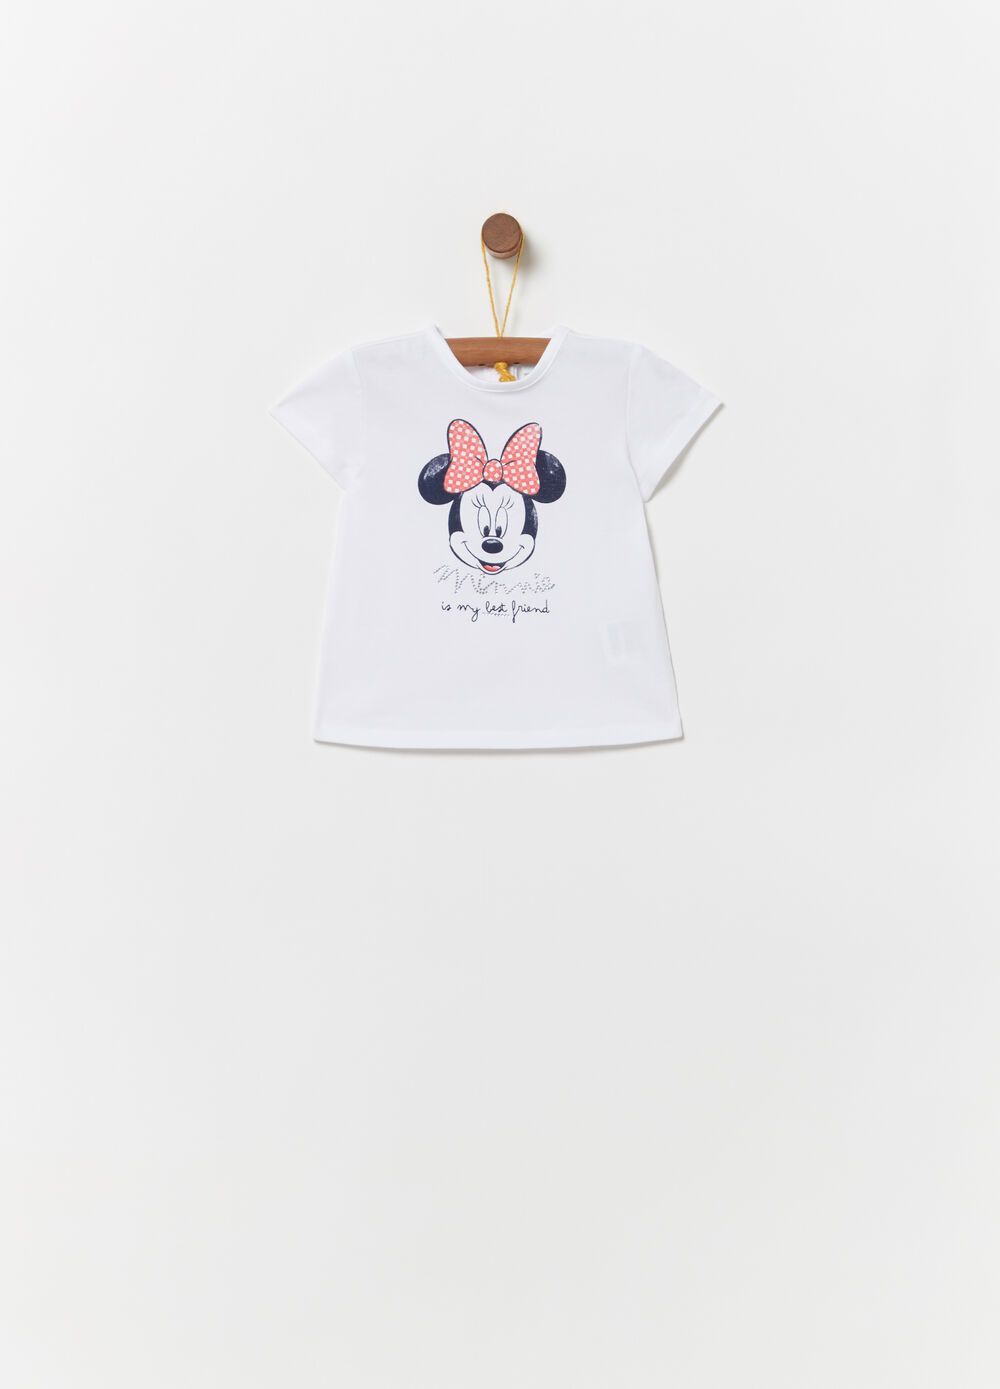 T-shirt with glitter Minnie Mouse print and diamantés